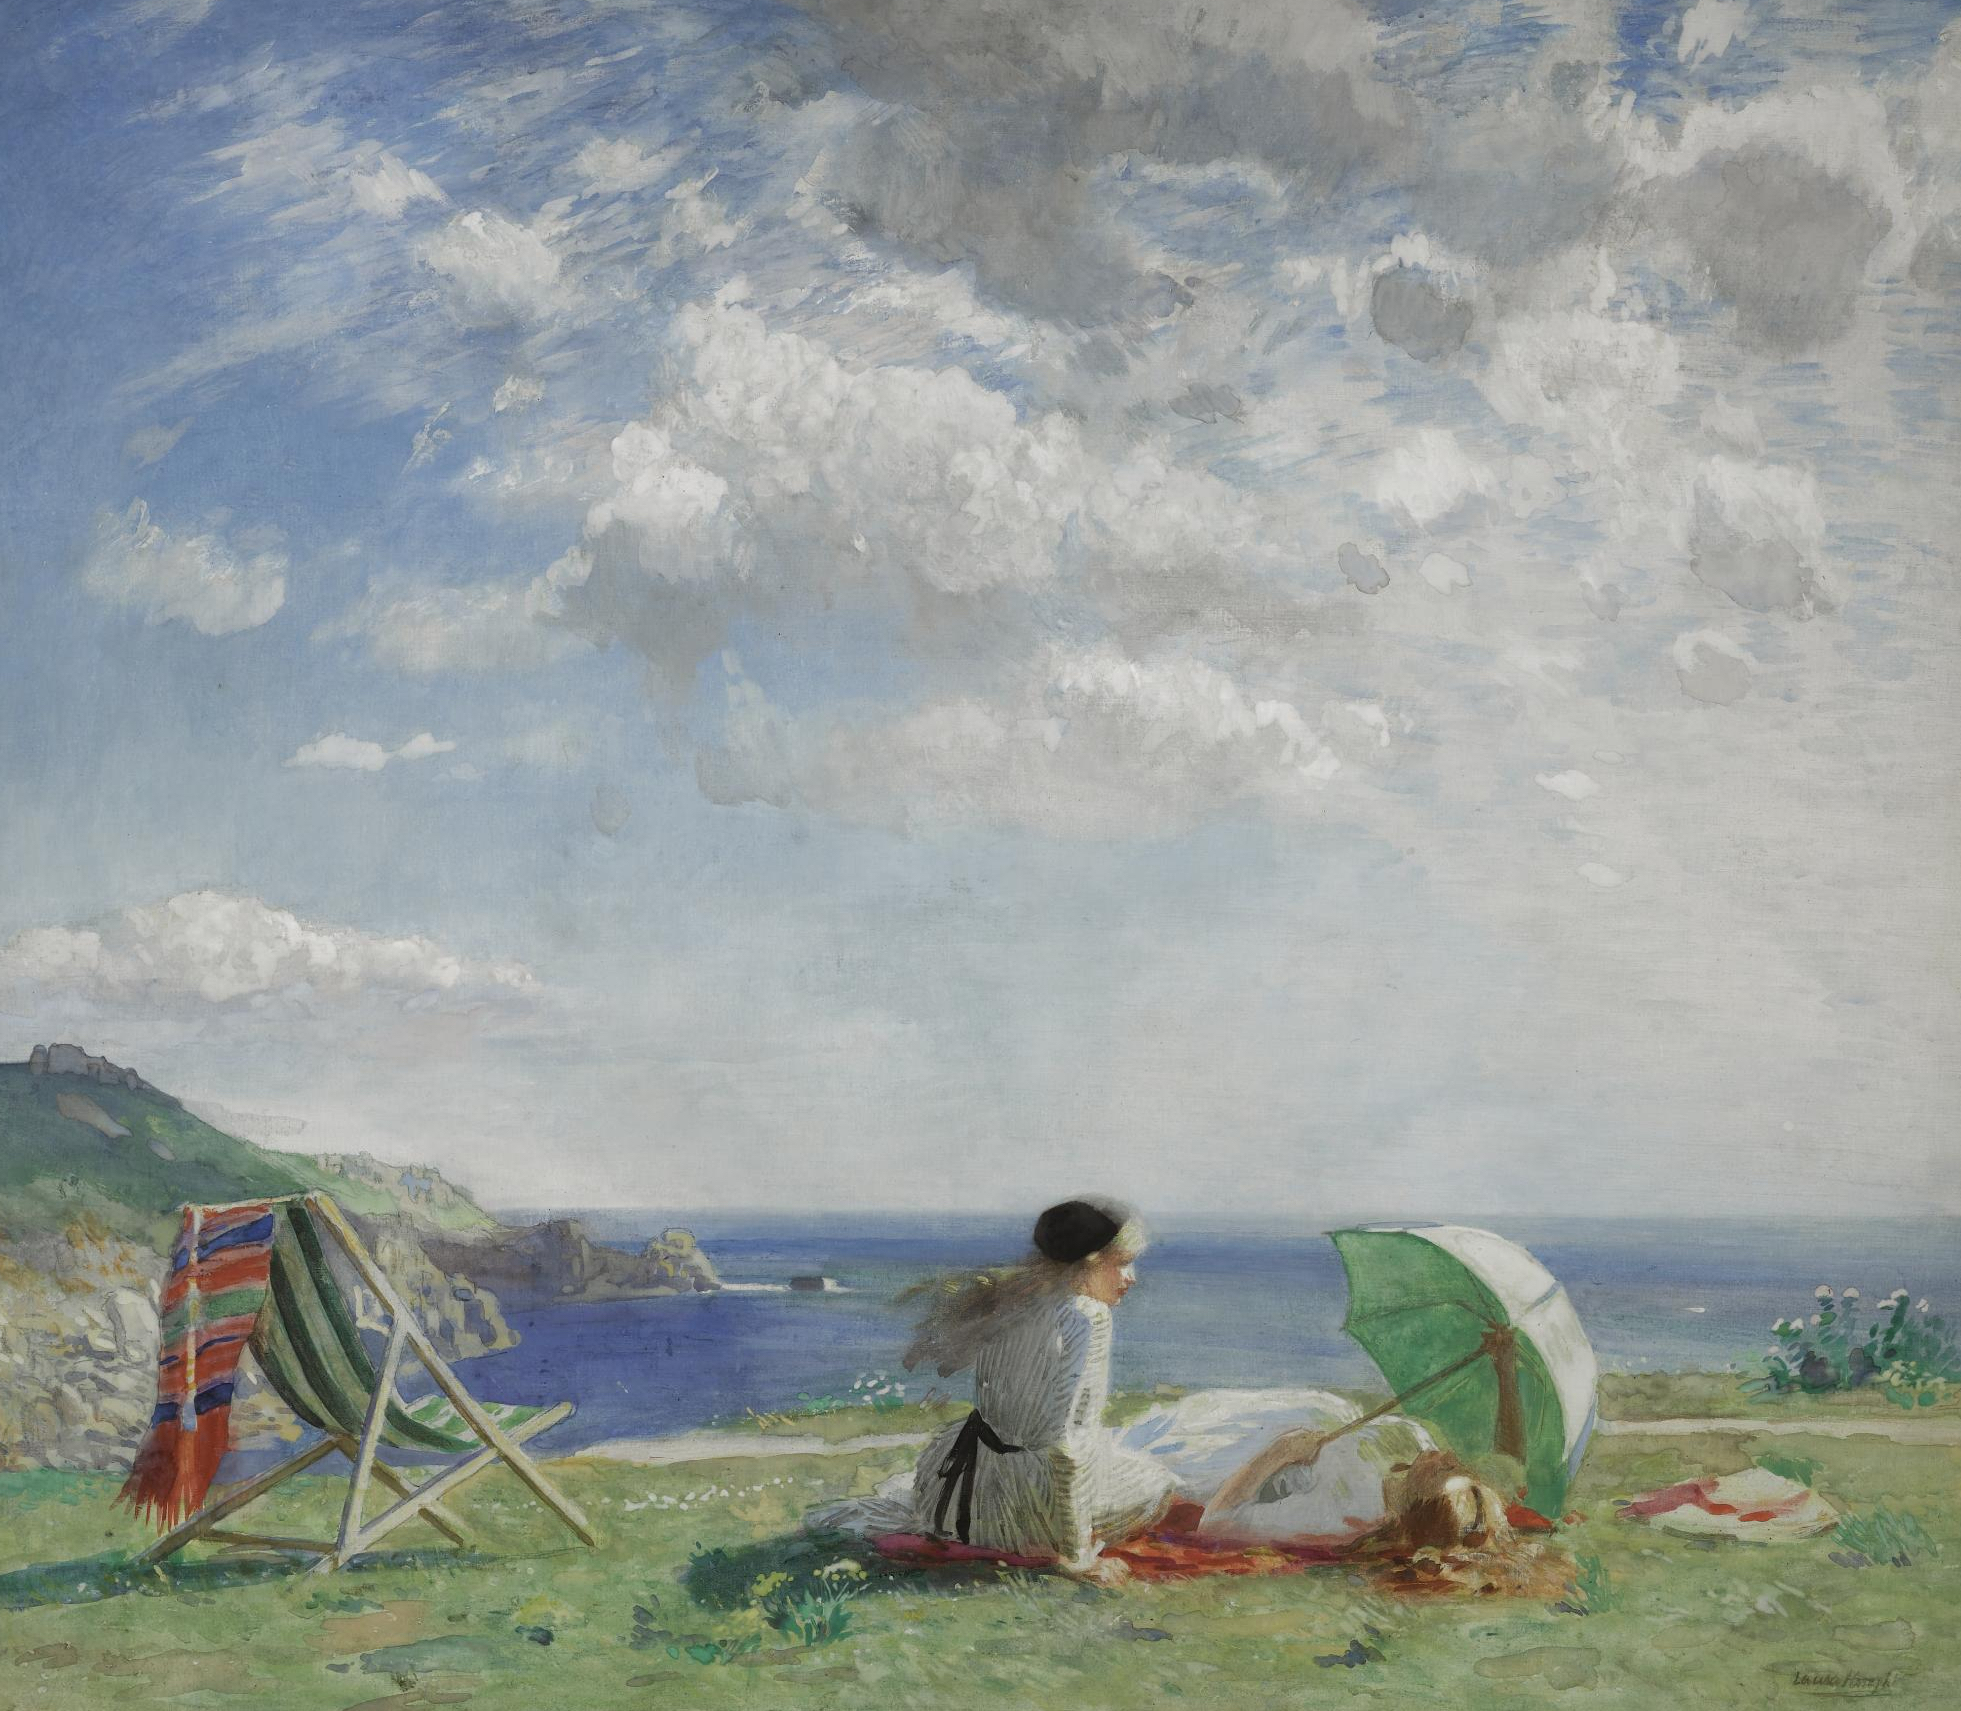 Laura Knight,  Wind and Sun,  1913, watercolour with bodycolour over pencil on linen, 96.5x112 cm, Sotheby's.   http://www.sothebys.com/en/auctions/ecatalogue/2009/victorian-edwardian-art-l09687/lot.69.html.html